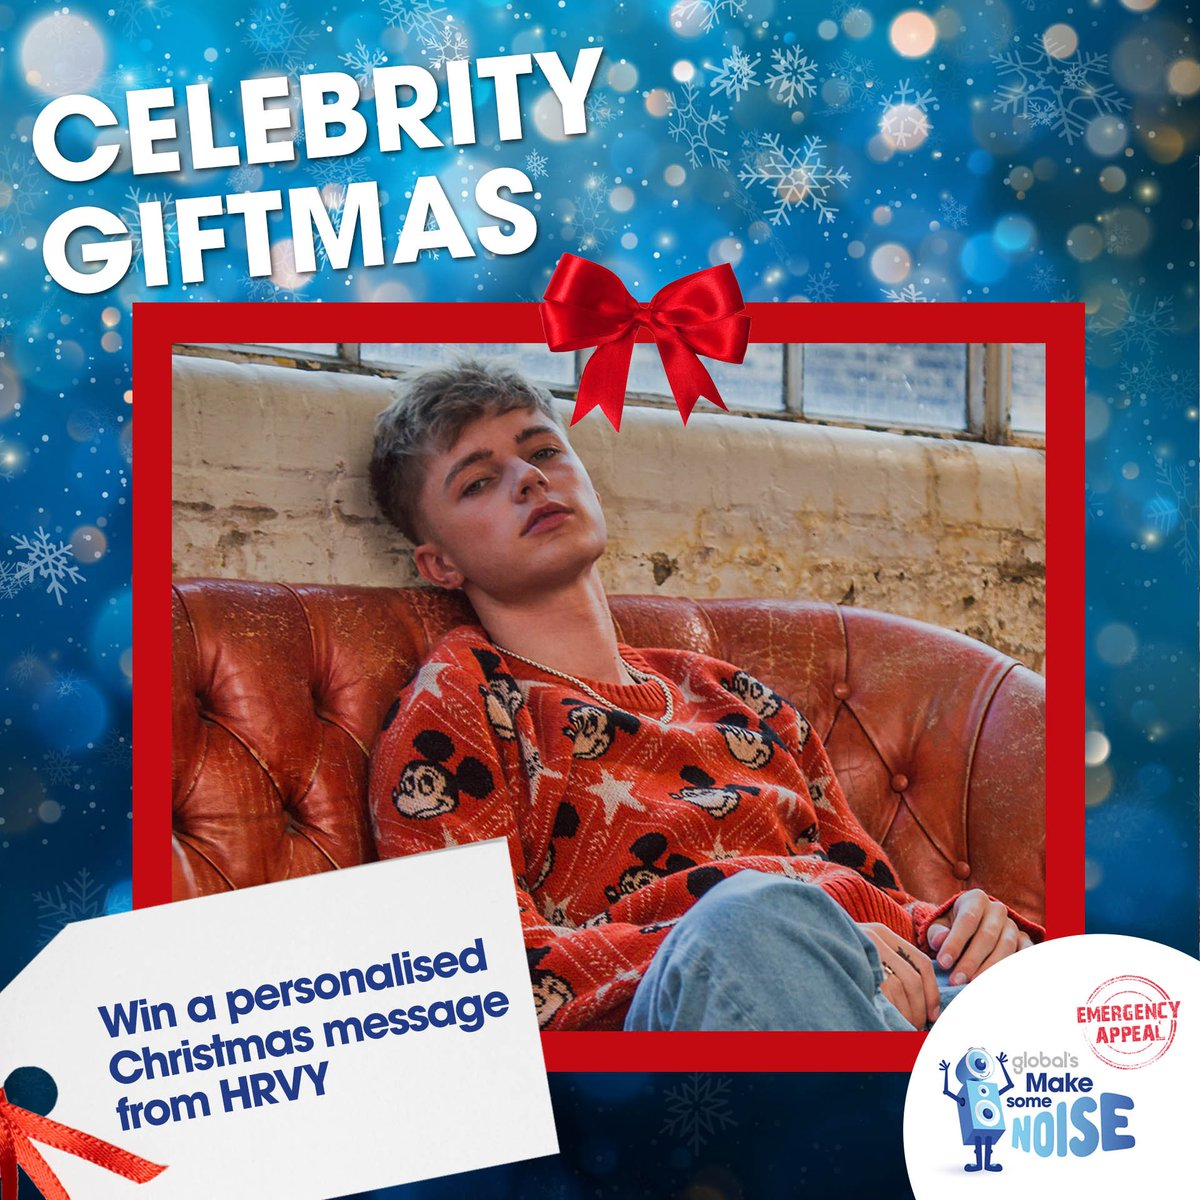 Excited to be part of Global's @makenoise #CelebrityGiftmas 🎁 I'm sending a personalised video message to a special someone this Christmas!  For your chance to #WIN and help those hit hardest by coronavirus across the UK, head here: